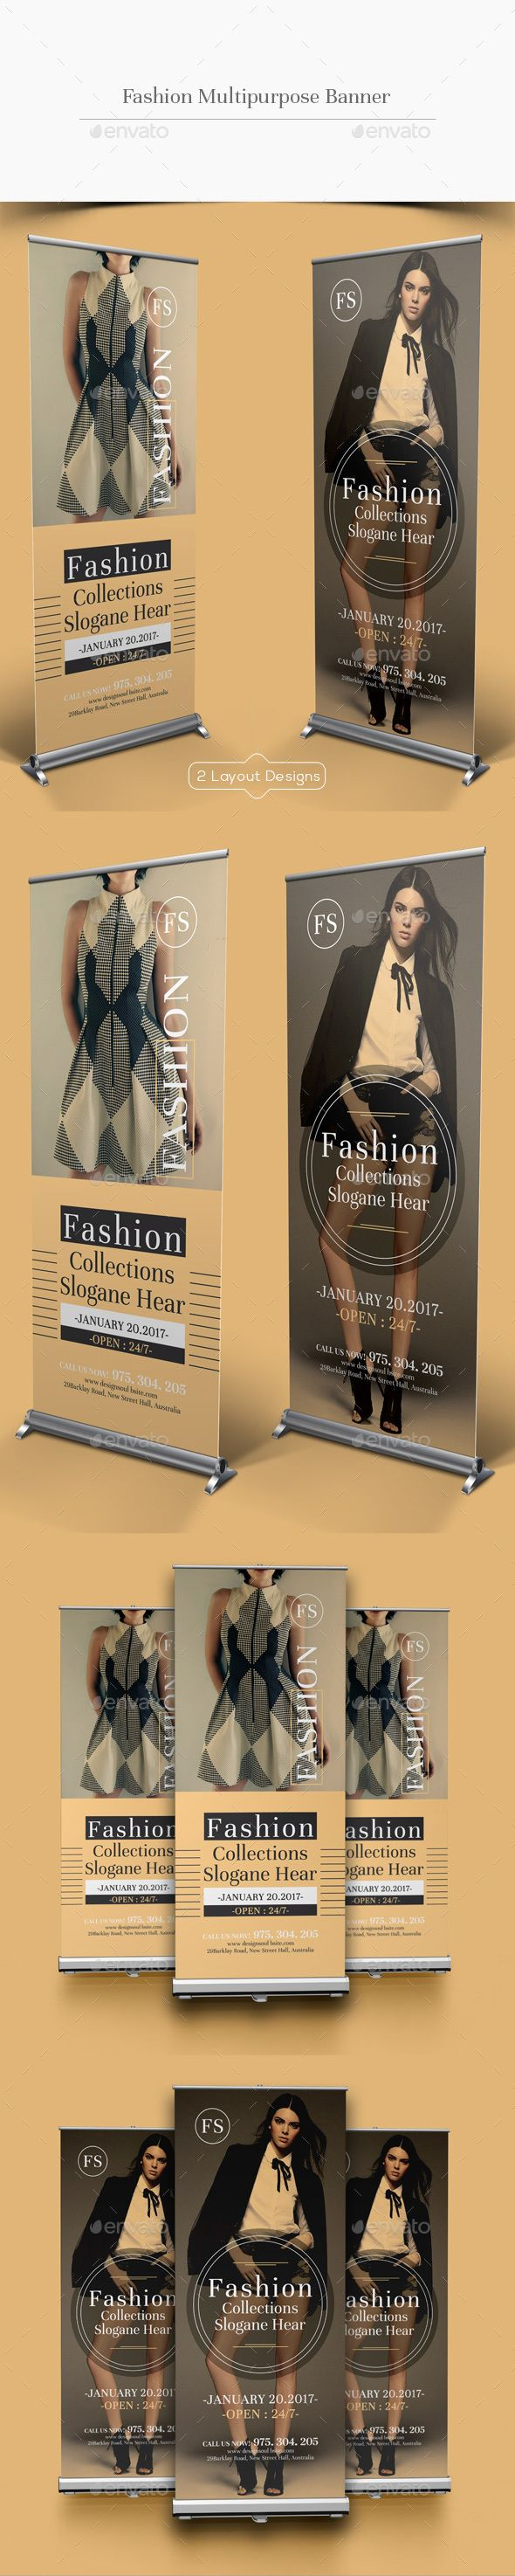 Fashion Multipurpose Rollup Banner — Photoshop PSD #procedure • Download ➝ https://graphicriver.net/item/fashion-multipurpose-rollup-banner/19203168?ref=pxcr